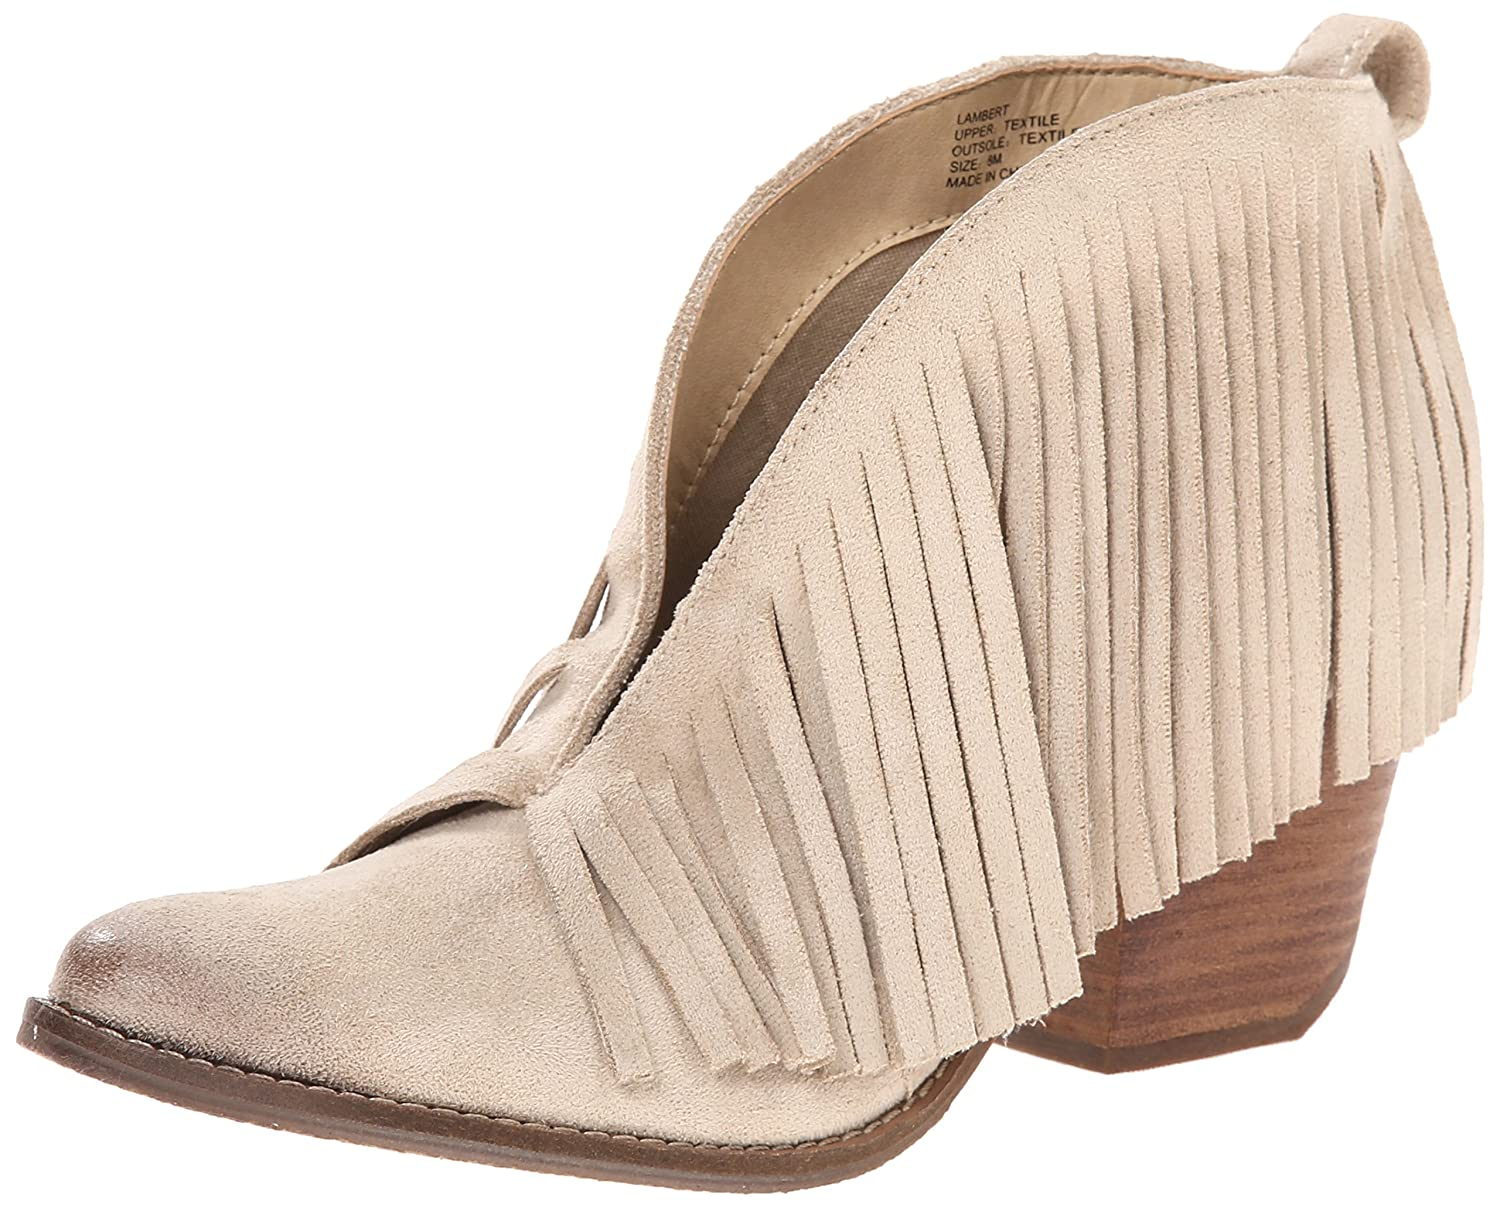 Coconuts by Matisse Women's Lambert Boot B000HR9EM6 8.5 B(M) US|Ivory